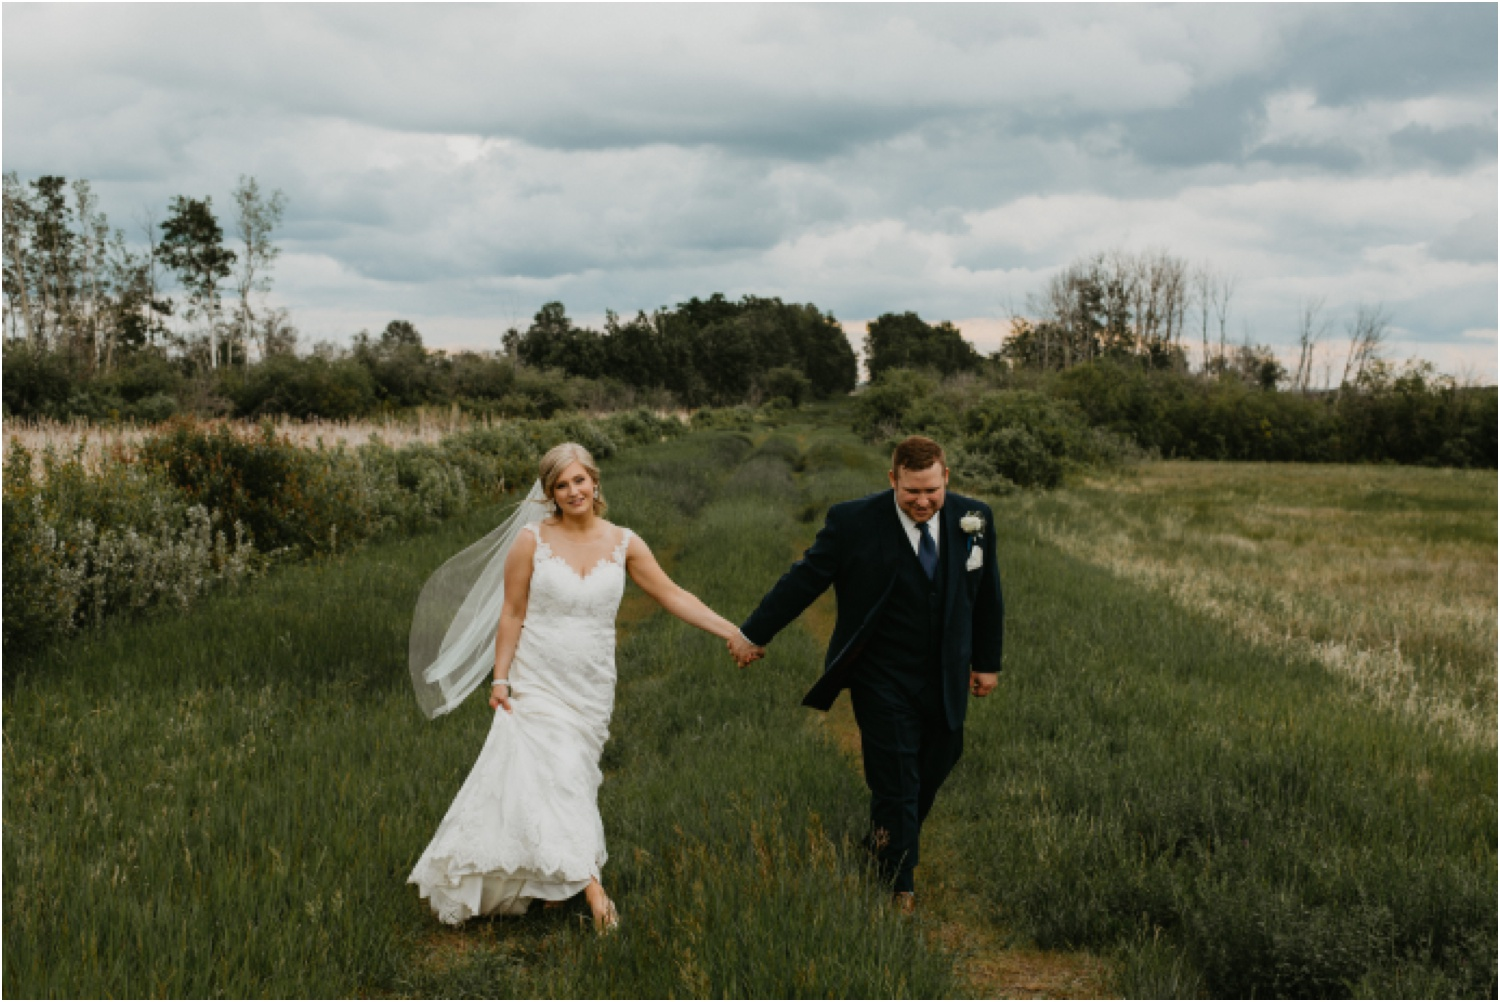 Kailey_Carter_Saskatchewan_Wedding (448 of 727).jpg